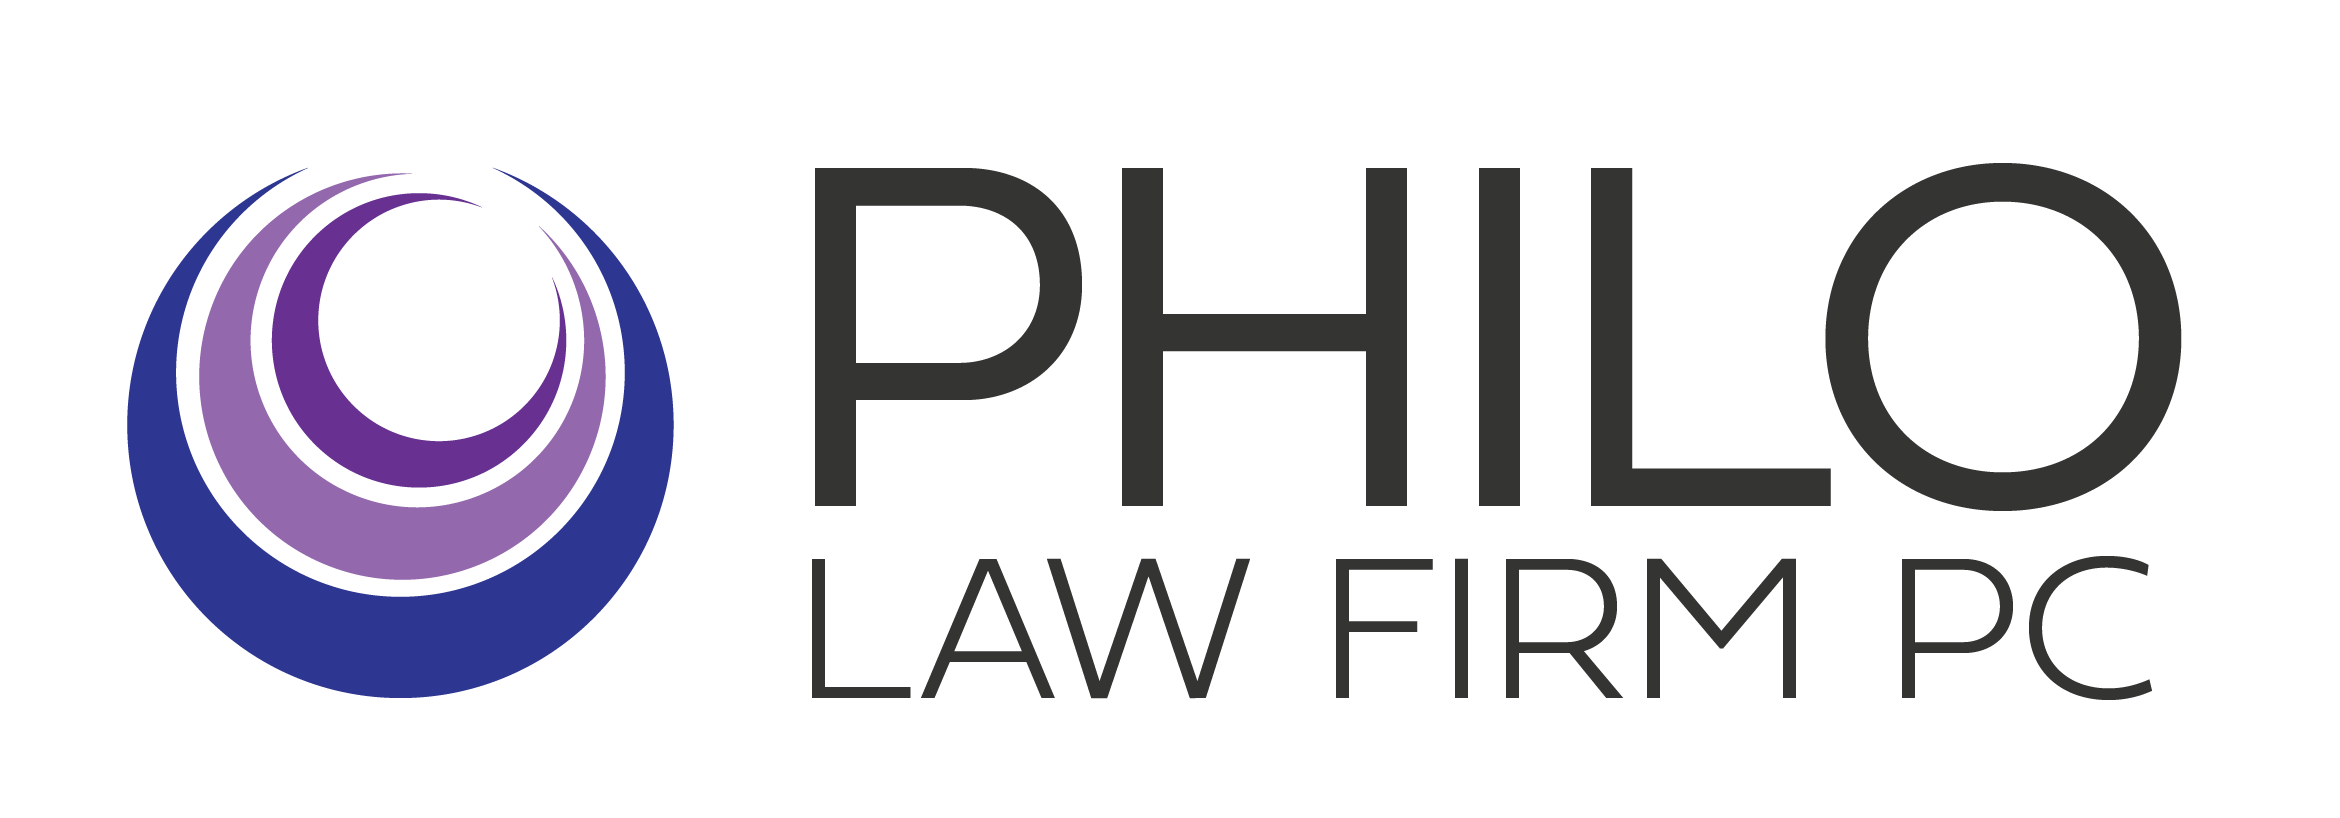 Philo Law Firm, P.C.